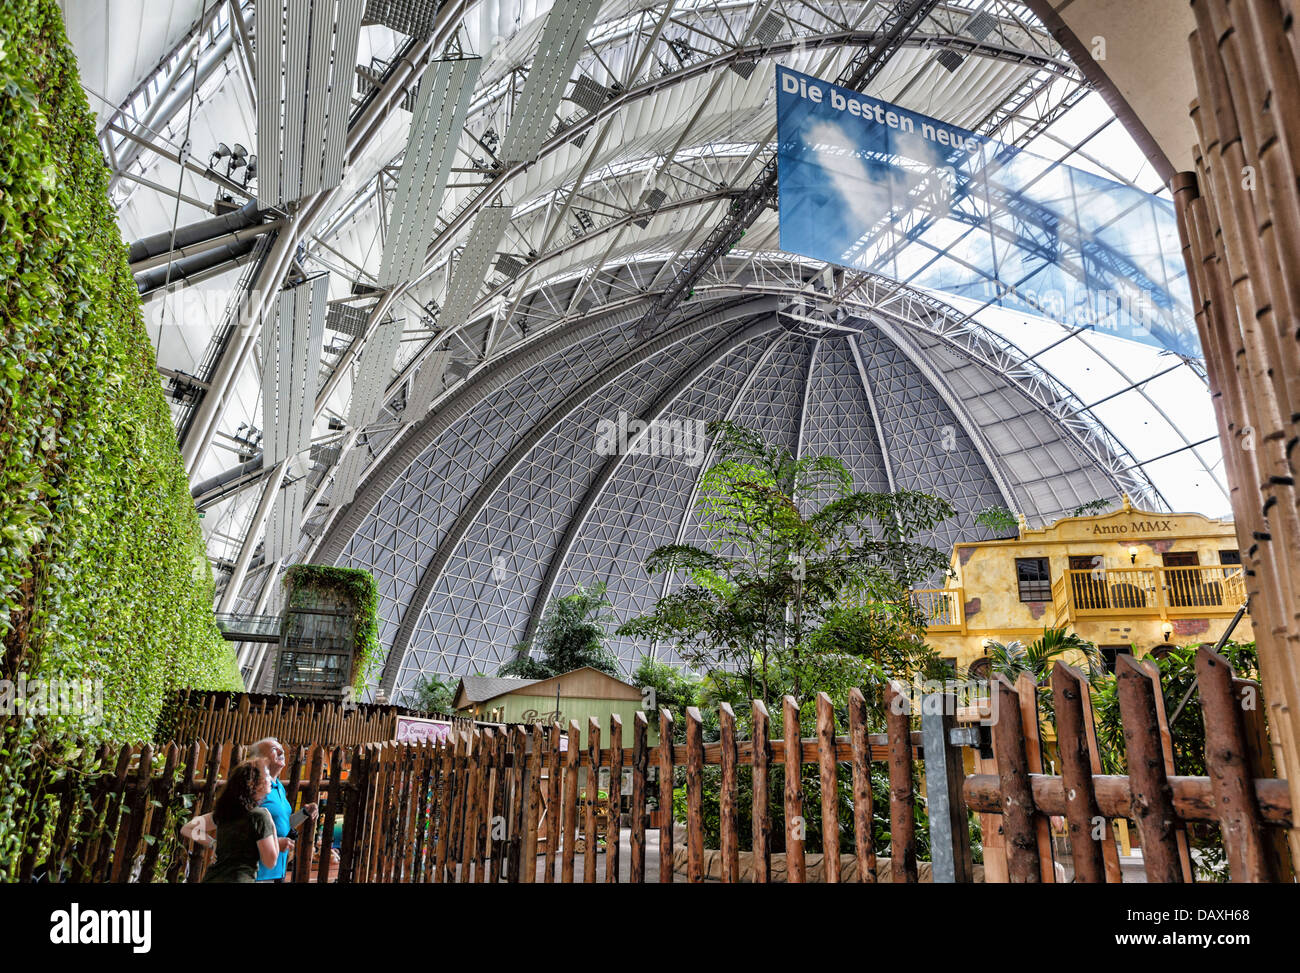 Tropical Islands Resort: Interior View Of The Dome Of Tropical Islands Resort